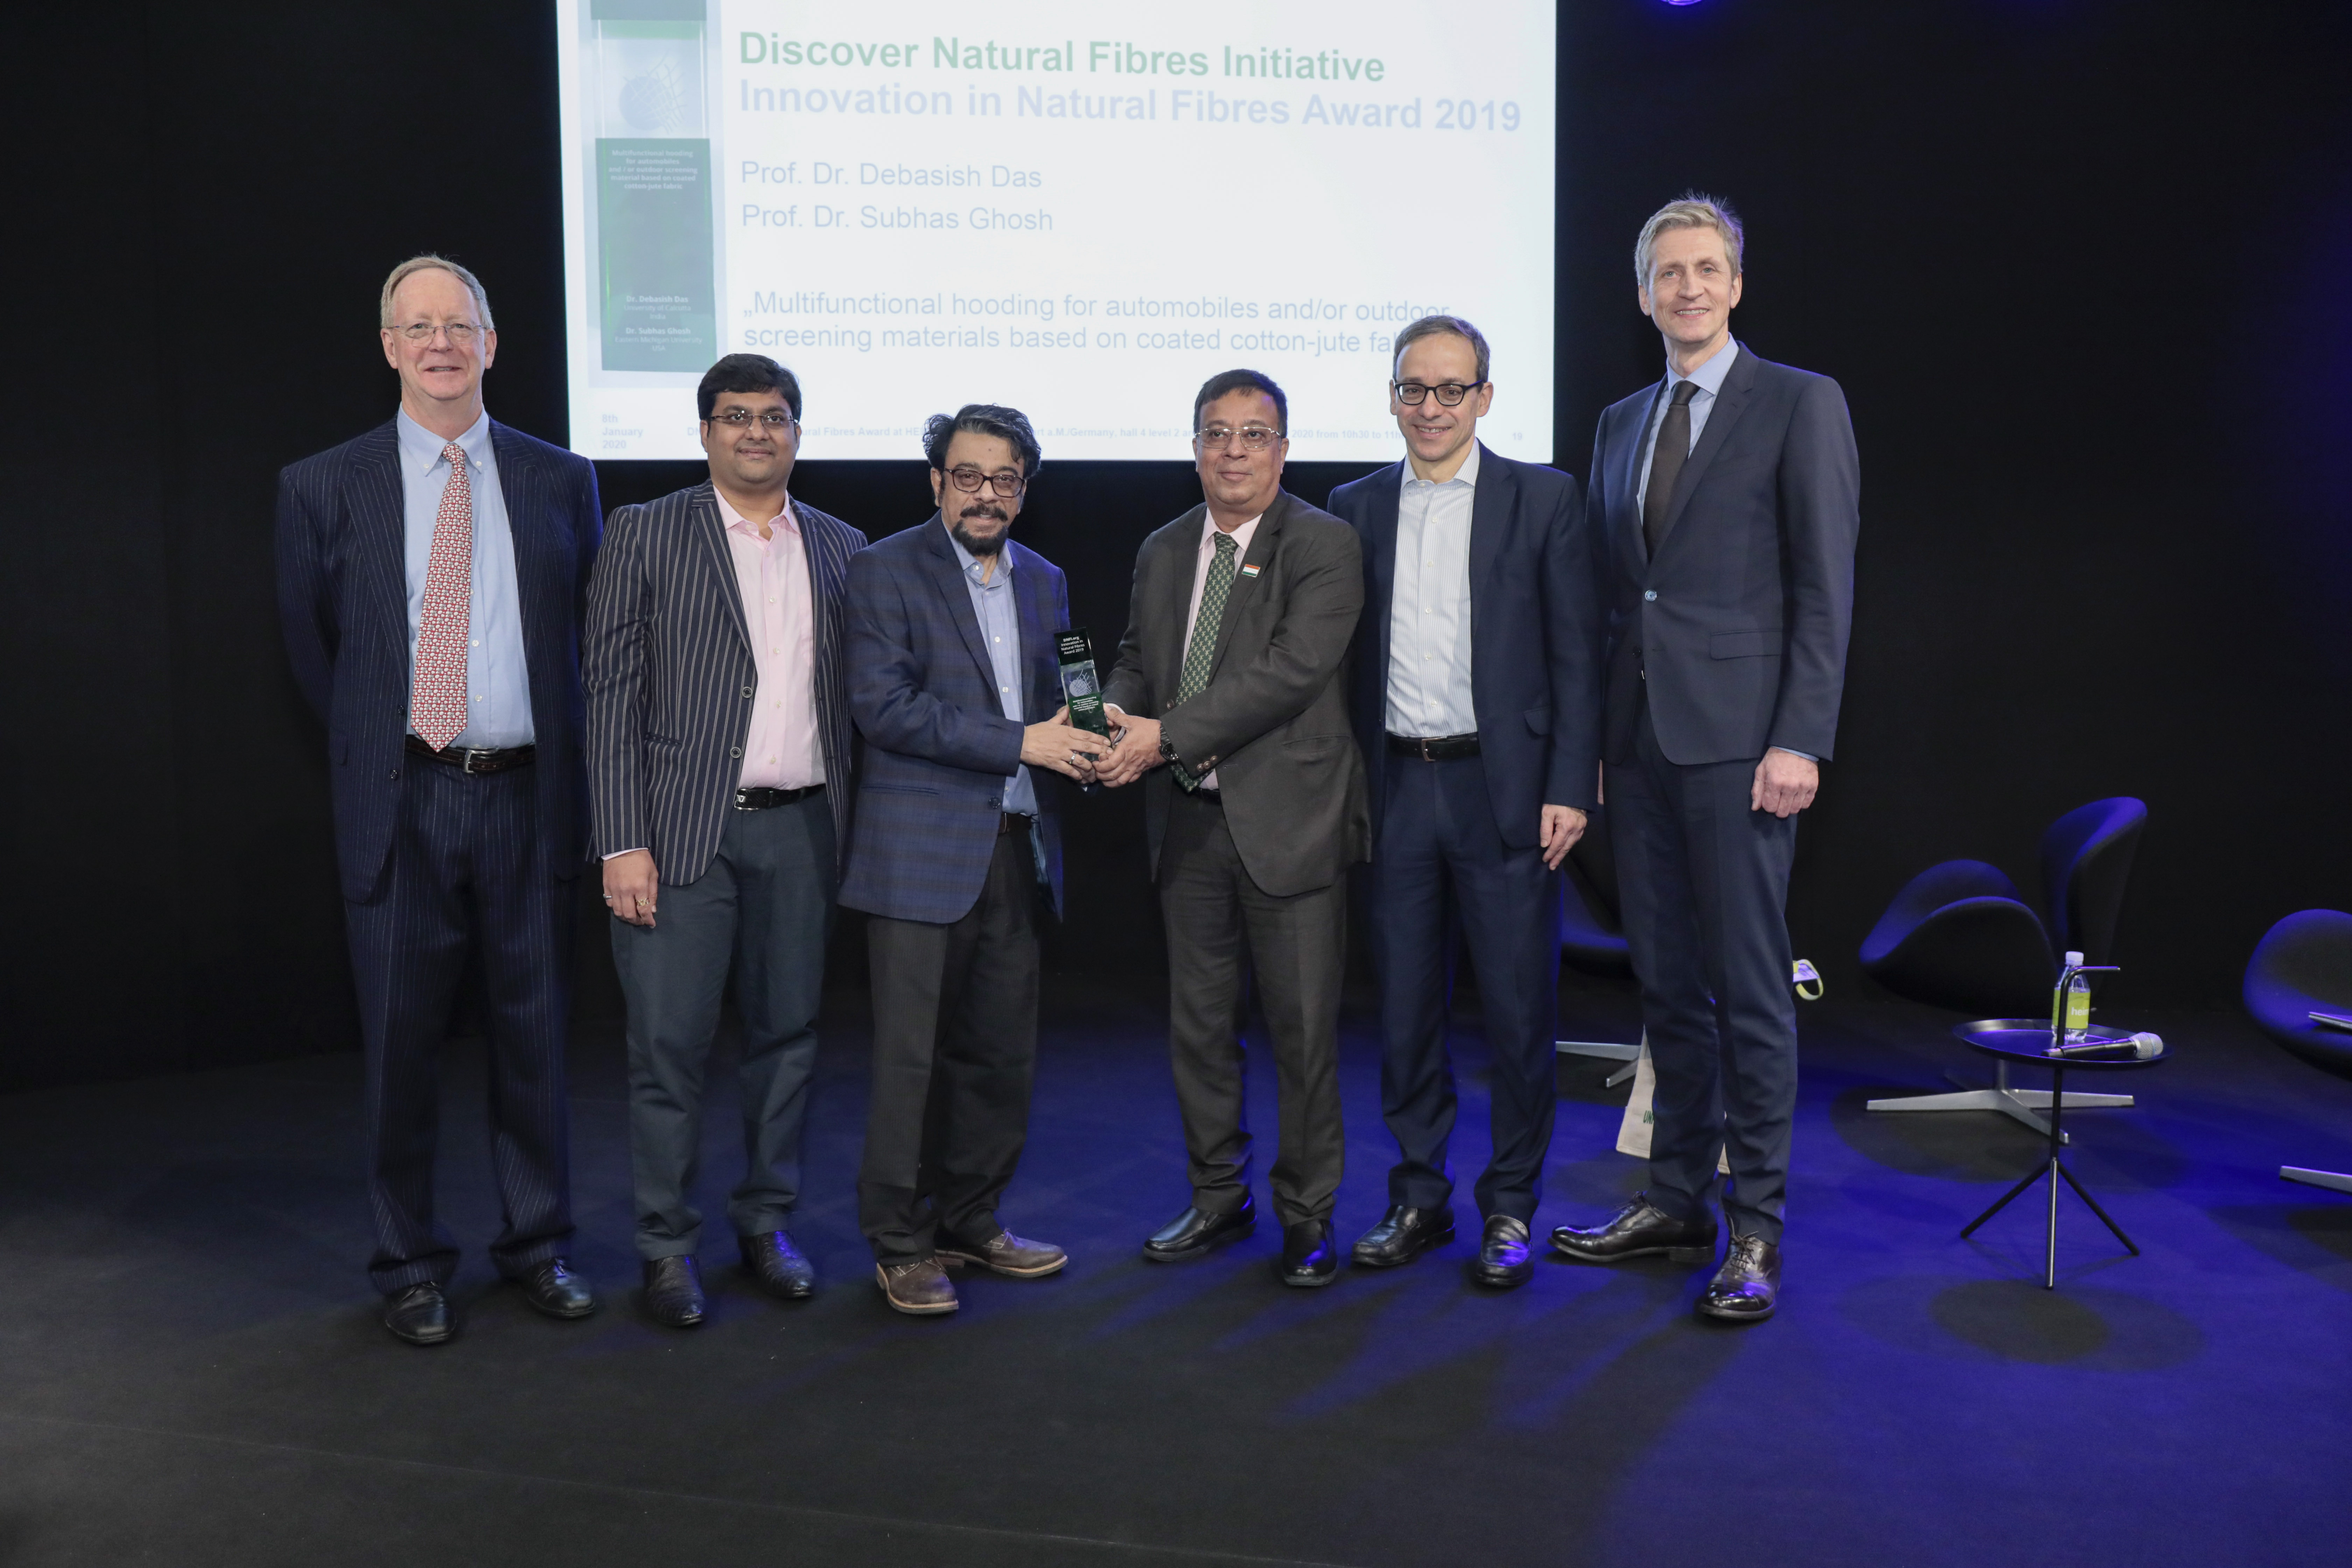 Award Ceremony: DNFI Innovation in Natural Fibres Award 2019 / Terry Townsend, Asish Mohta, Ph. Dr. Debasish Das, Moloy Chandan Chakrabortty, Dr. Christian Schindler, Ernst Grimmelt